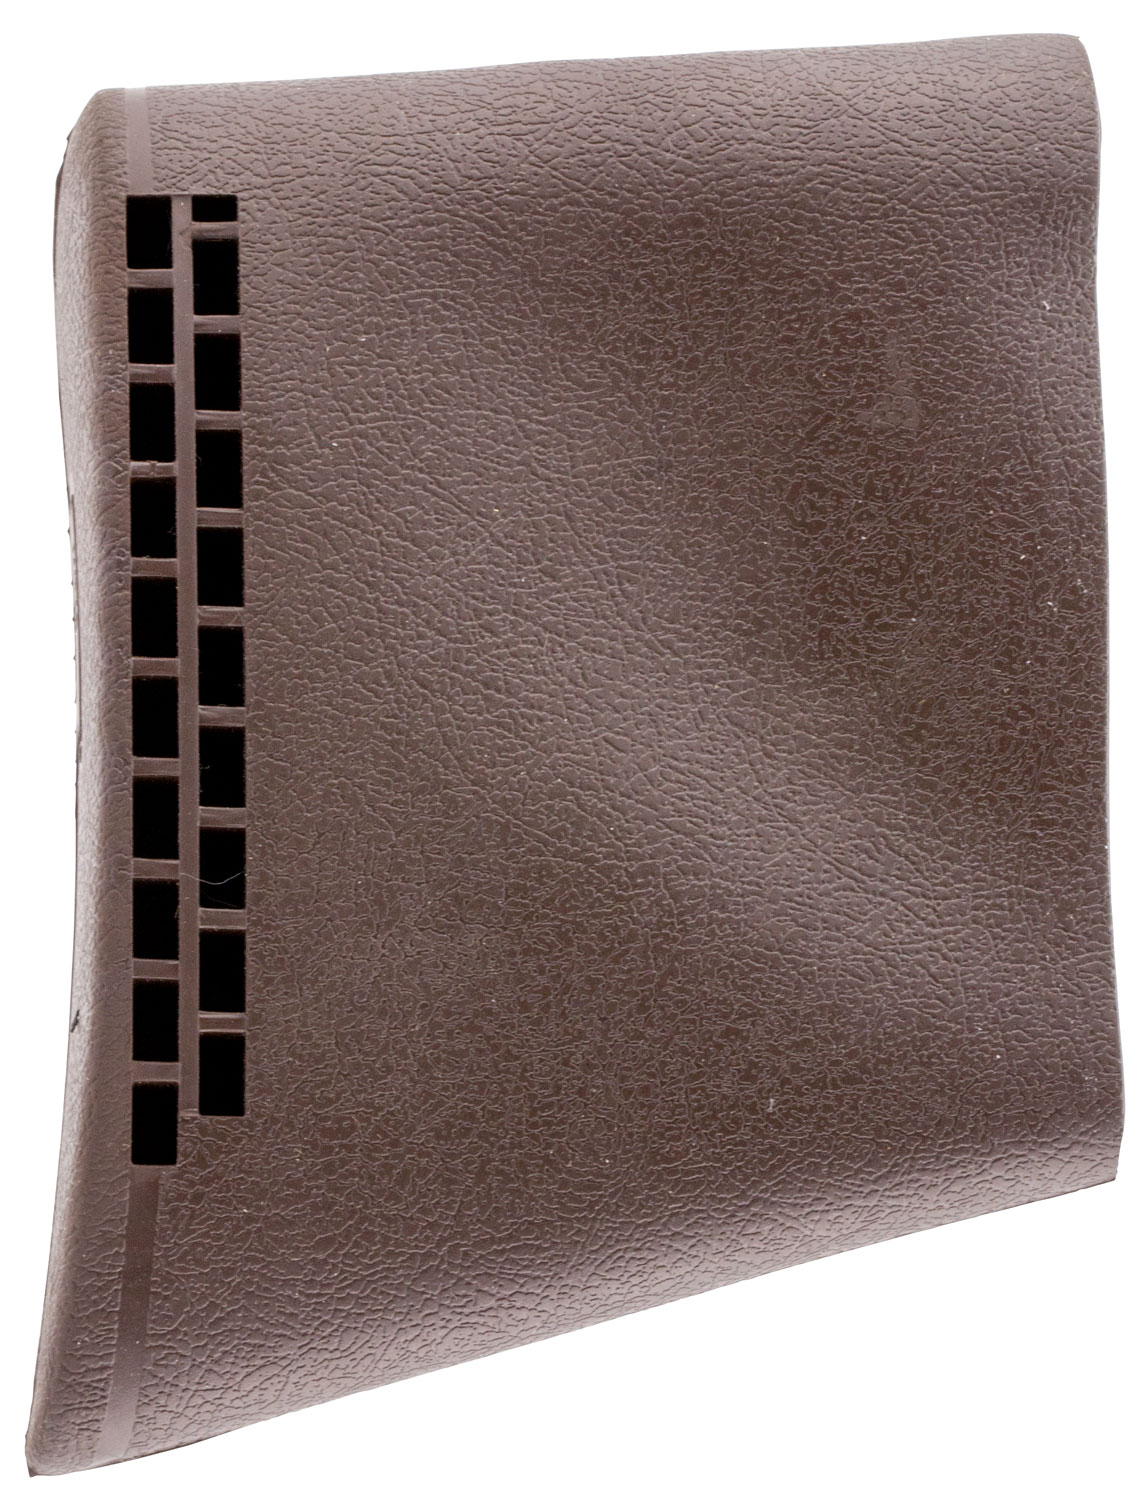 Butler Creek 50327 Slip On Recoil Pad Large Matte Brown Rubber